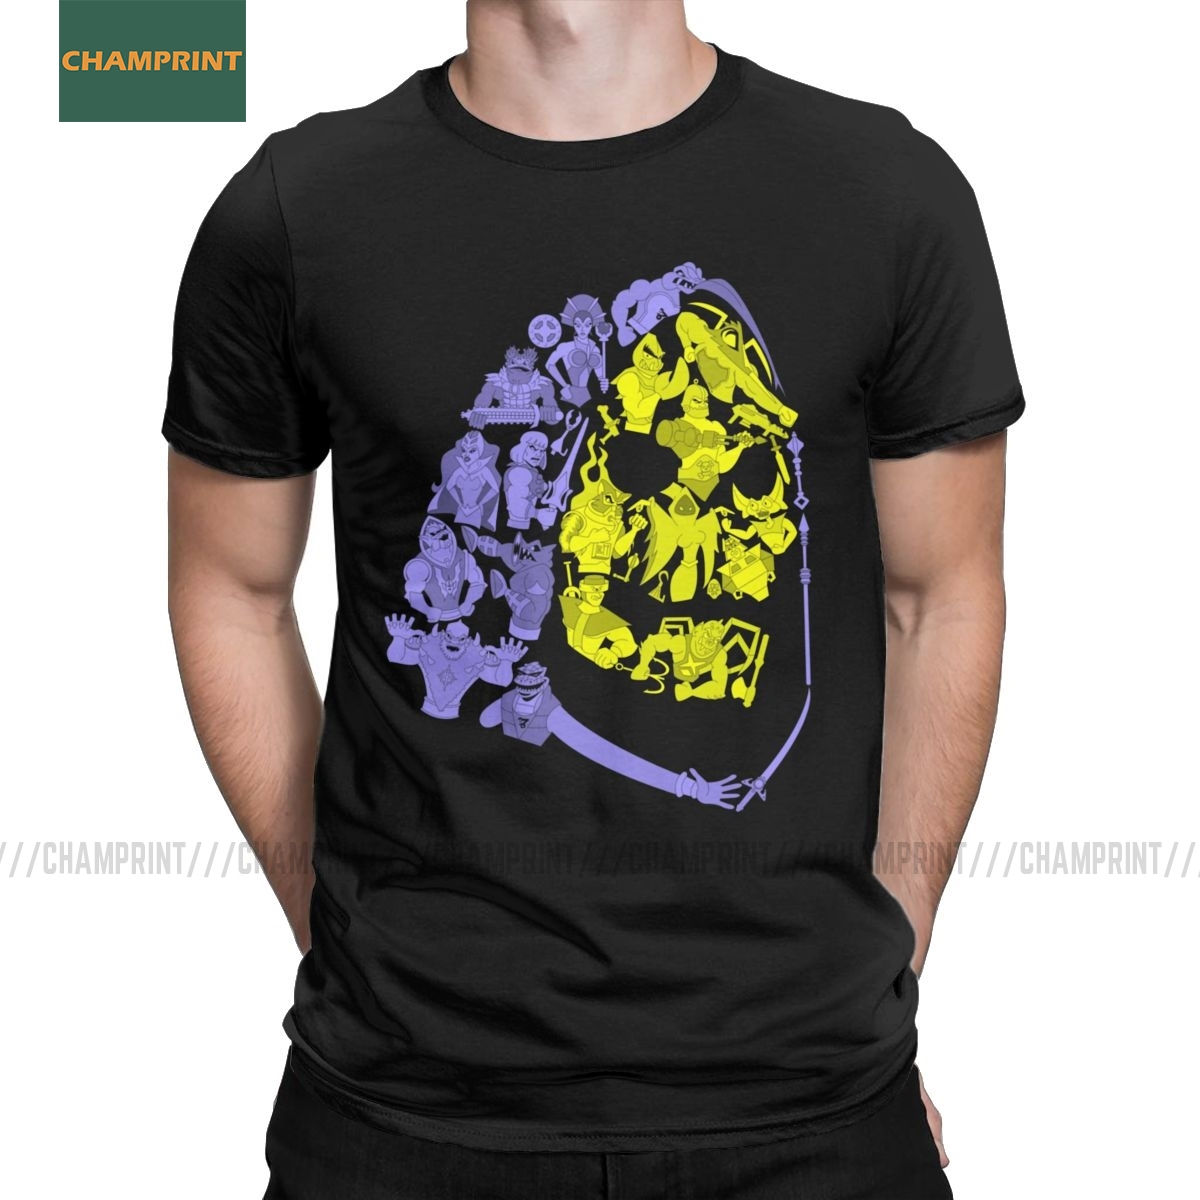 Skeletor And Friends He-Man Masters Of The Universe T Shirt Men Cotton T-Shirts Skeletor 80s She-Ra Beast Tees Short Sleeve